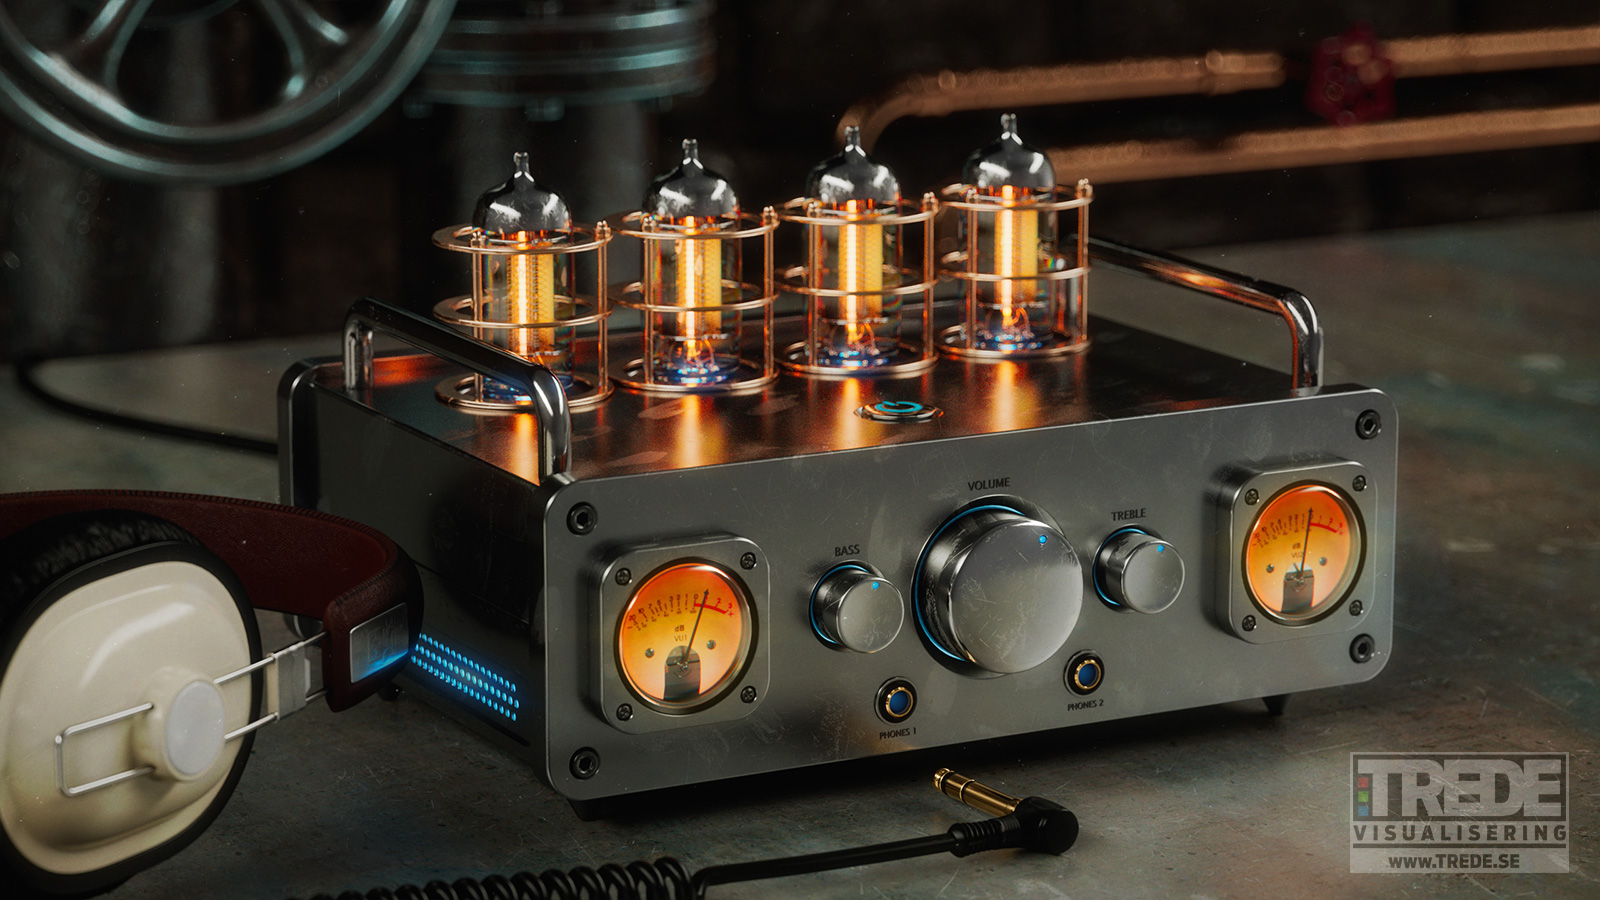 Vacuum Tube Amp - Design By Ulf Ekelöf